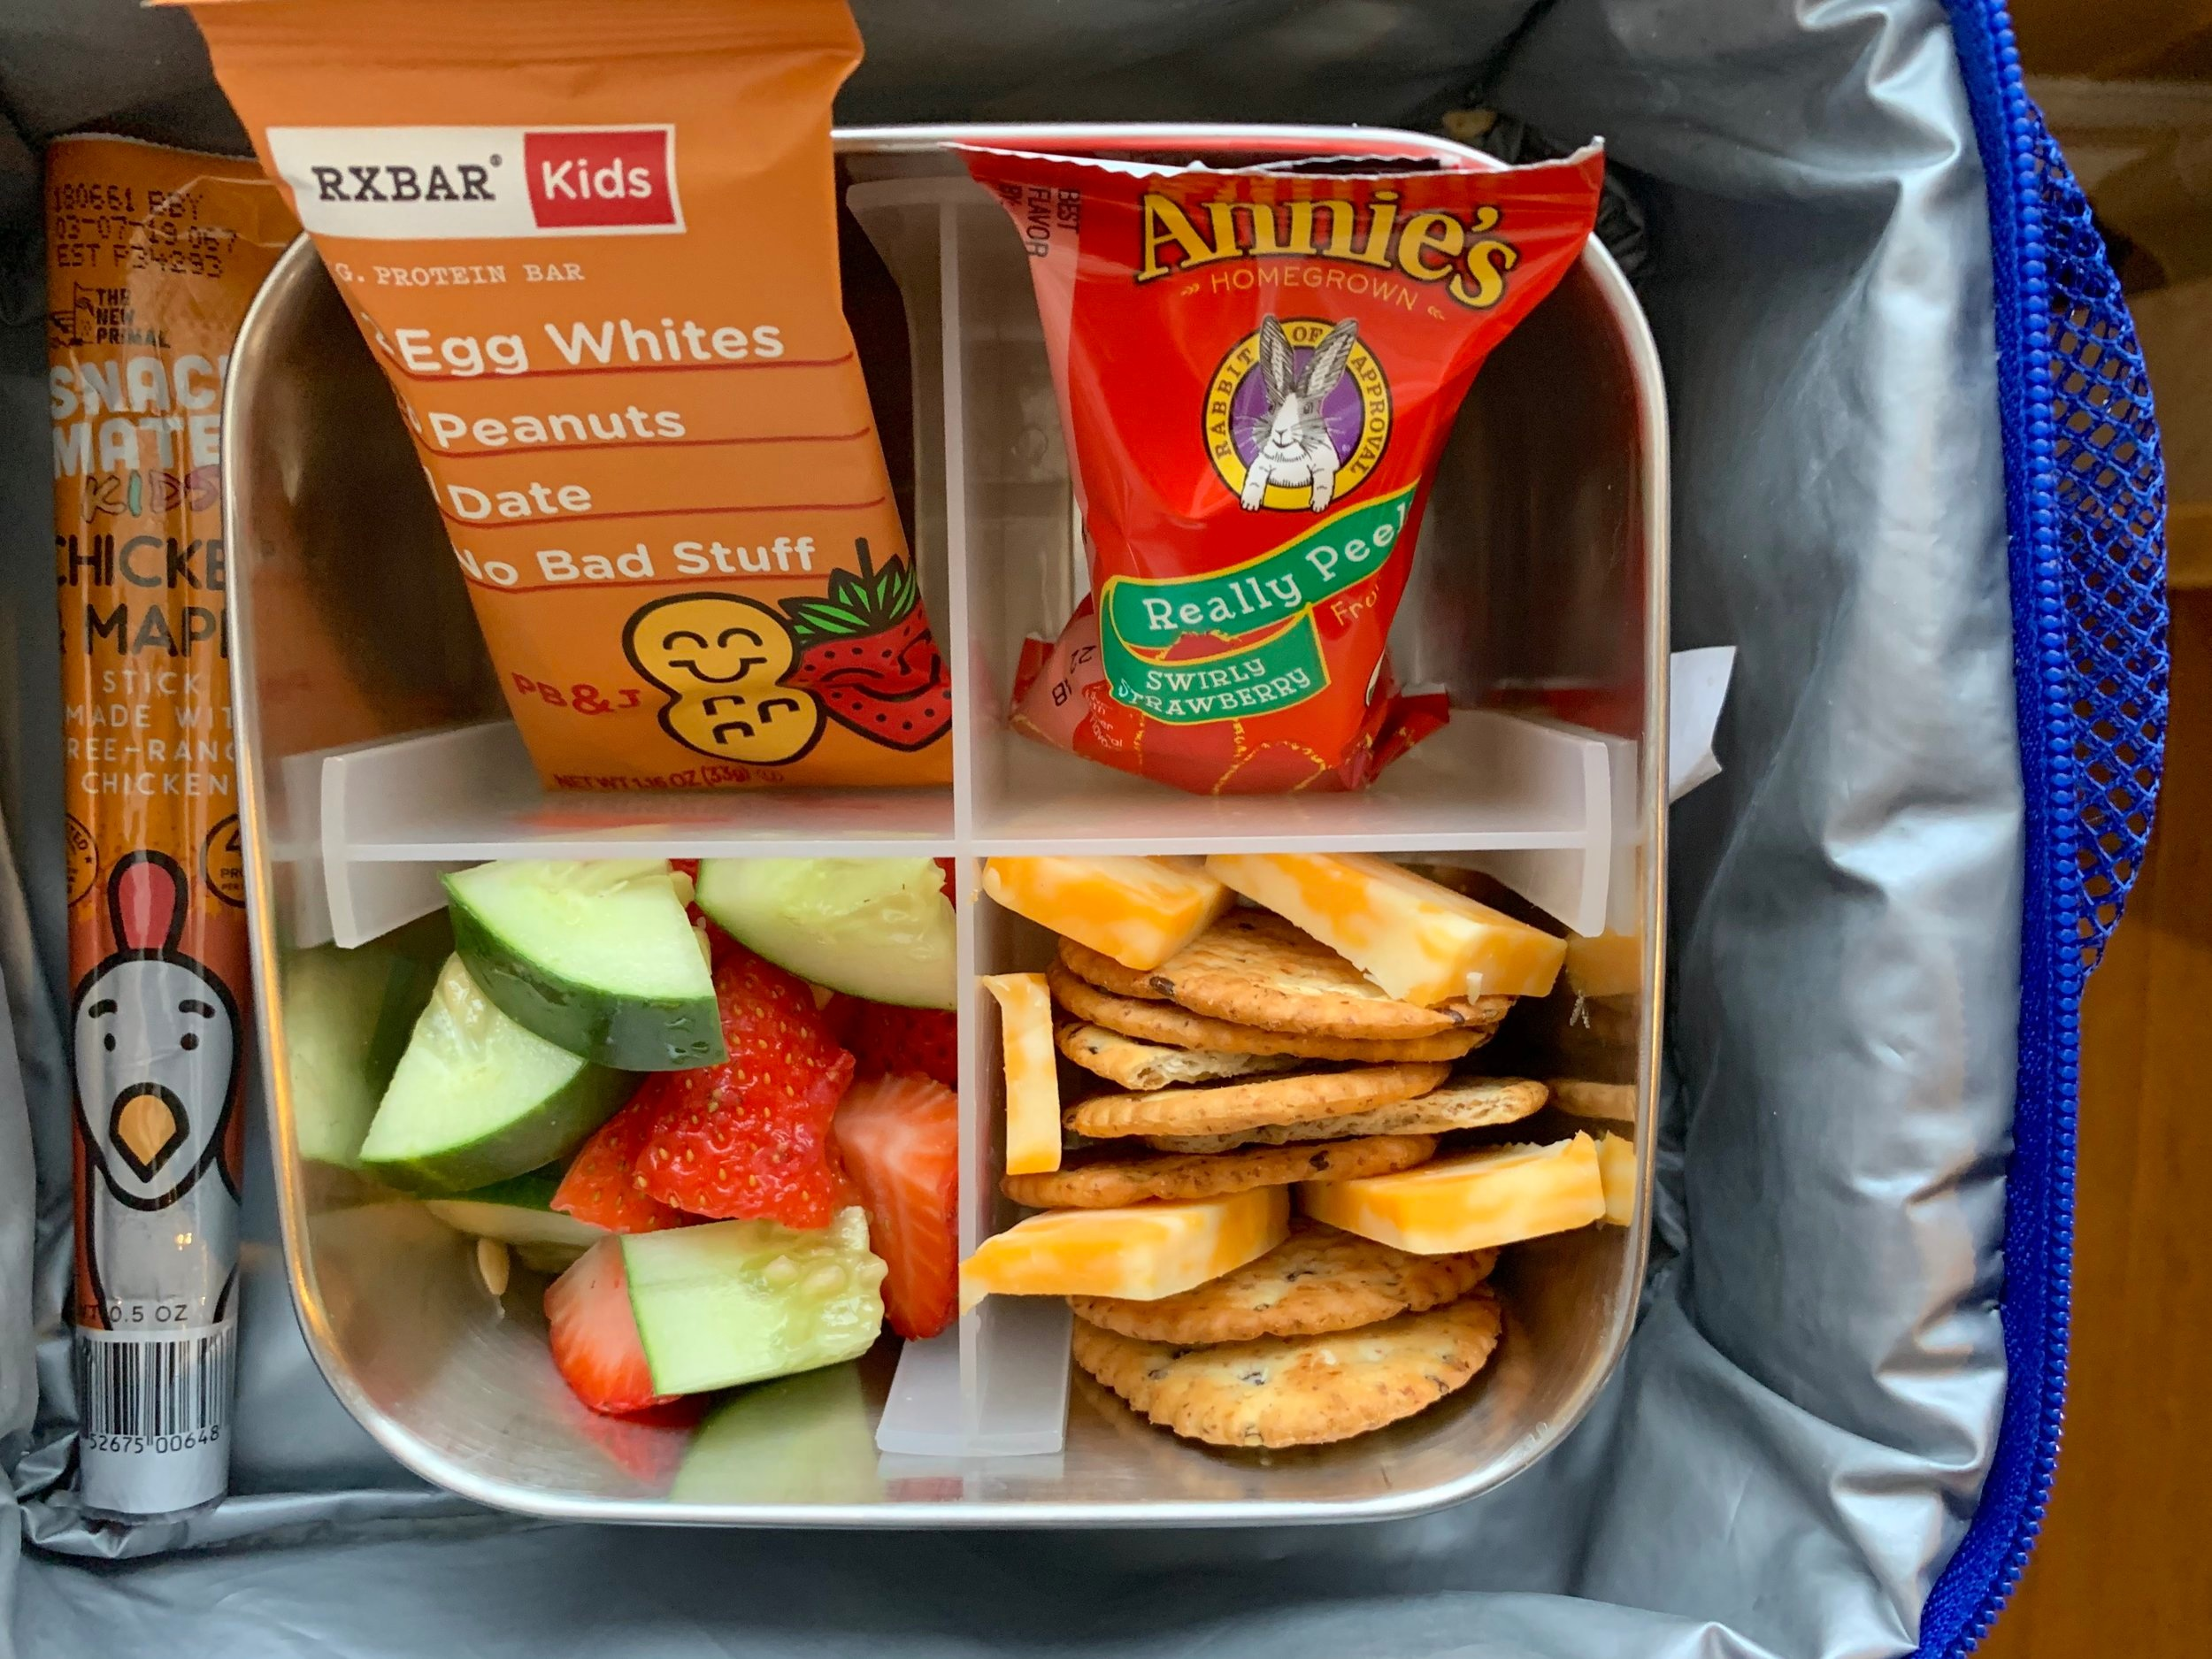 17 Real Parents Share Their Secrets to Packing Healthy School Lunches - POPSUGAR